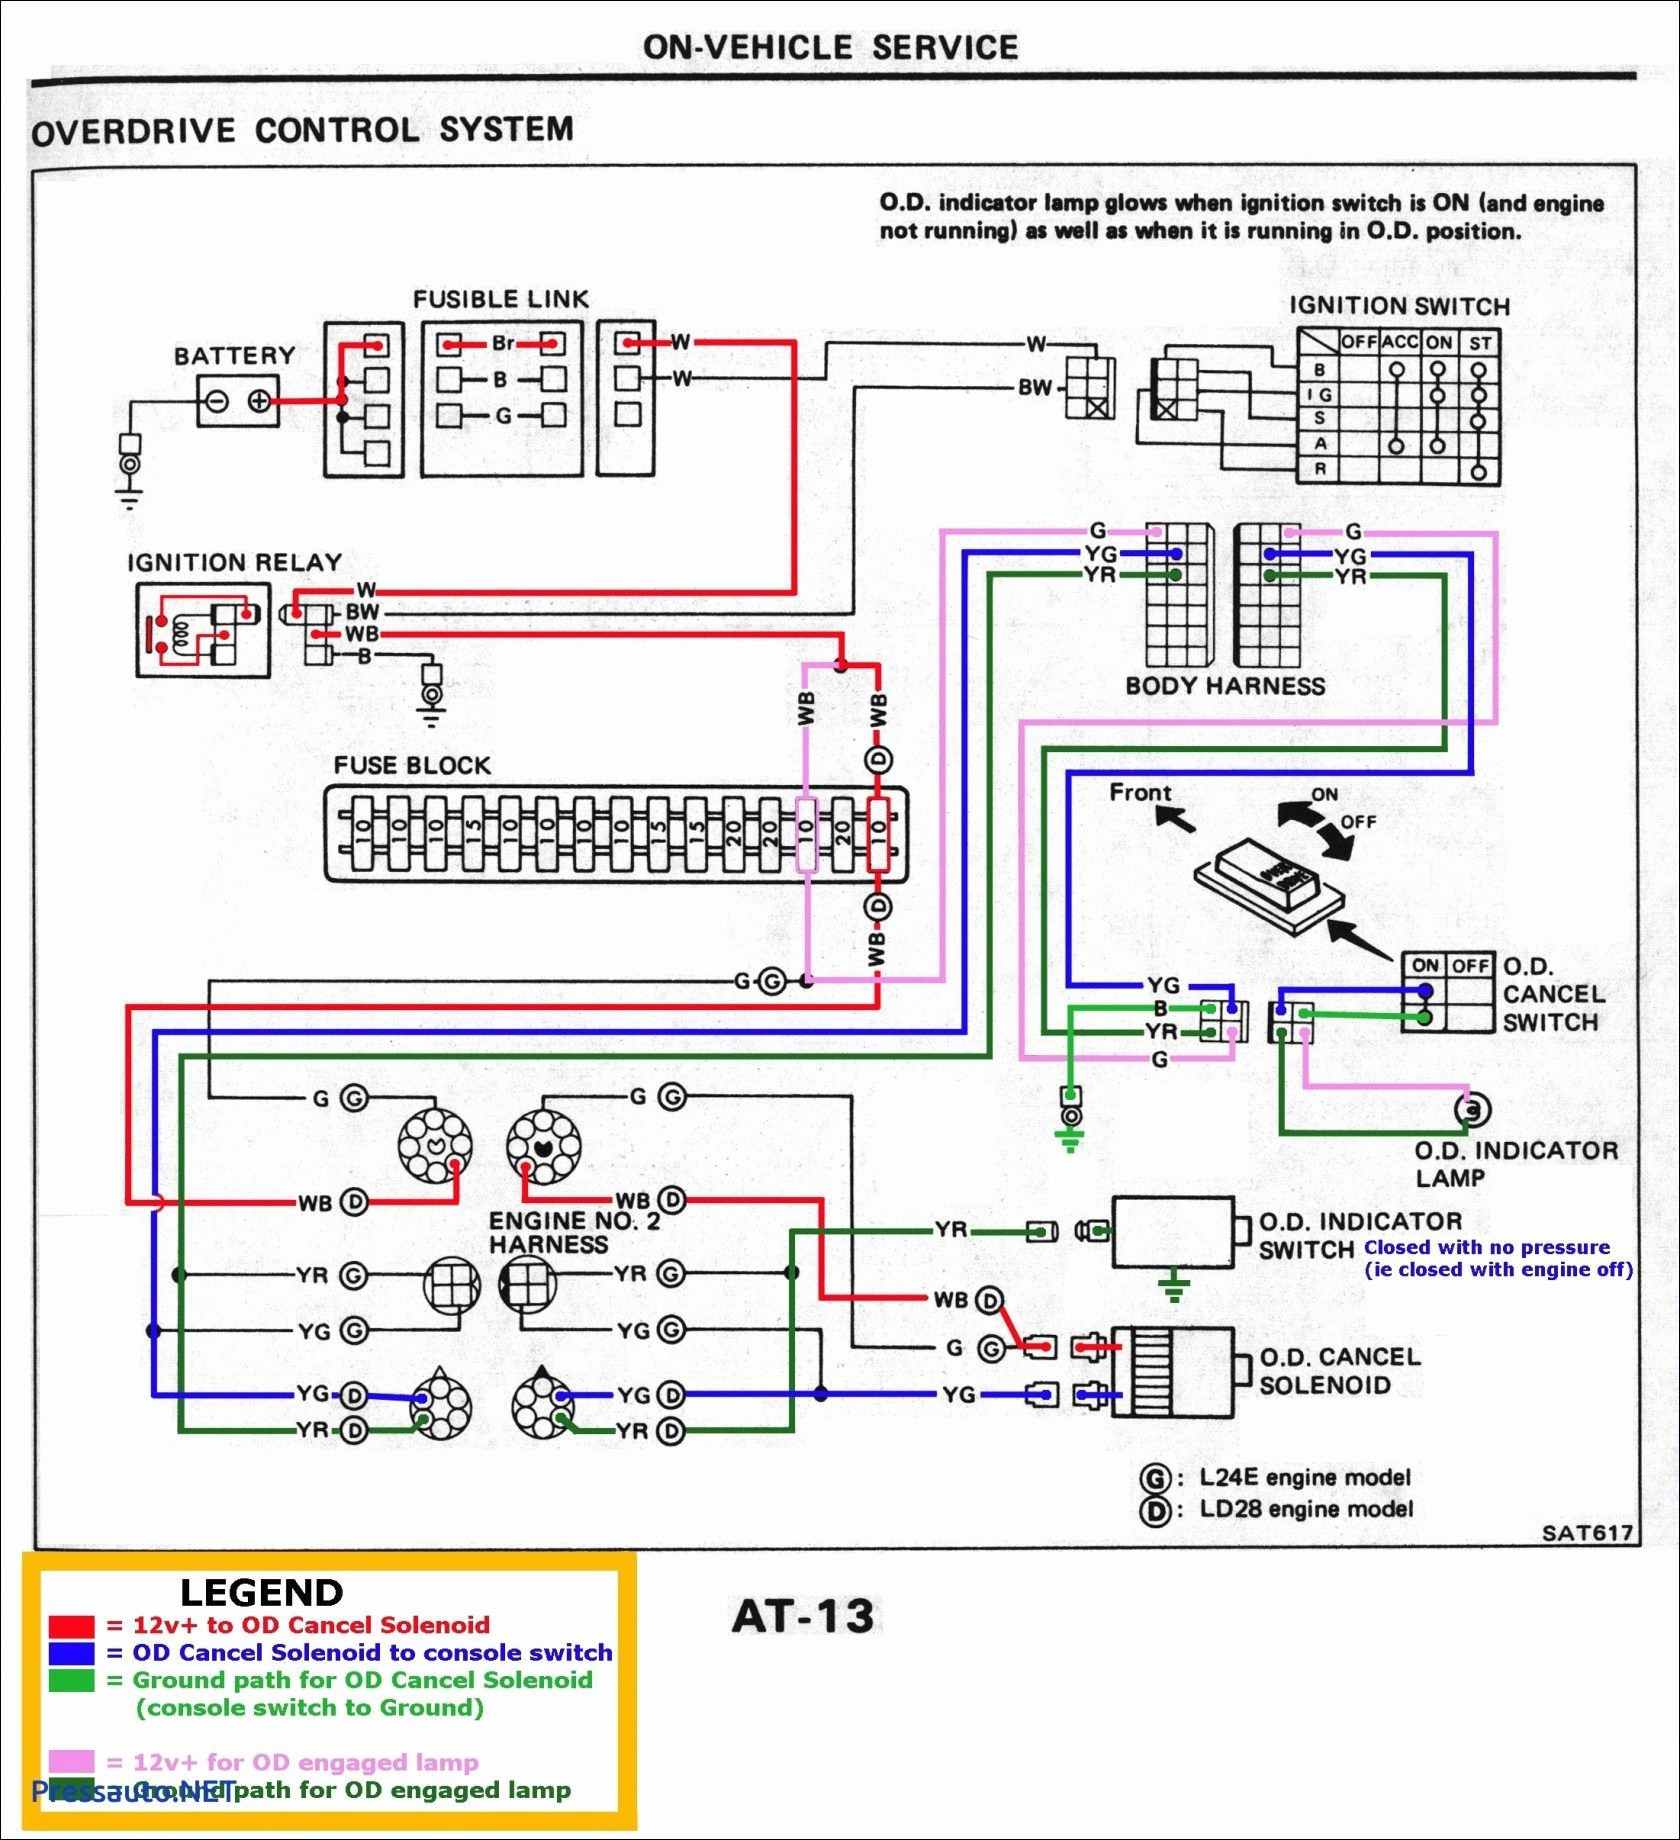 traffic signal wiring diagram Collection-Wiring Diagram For Traffic Lights Inspirational Australian Light Wiring Diagram Valid Fluro Light Wiring Diagram 10-l